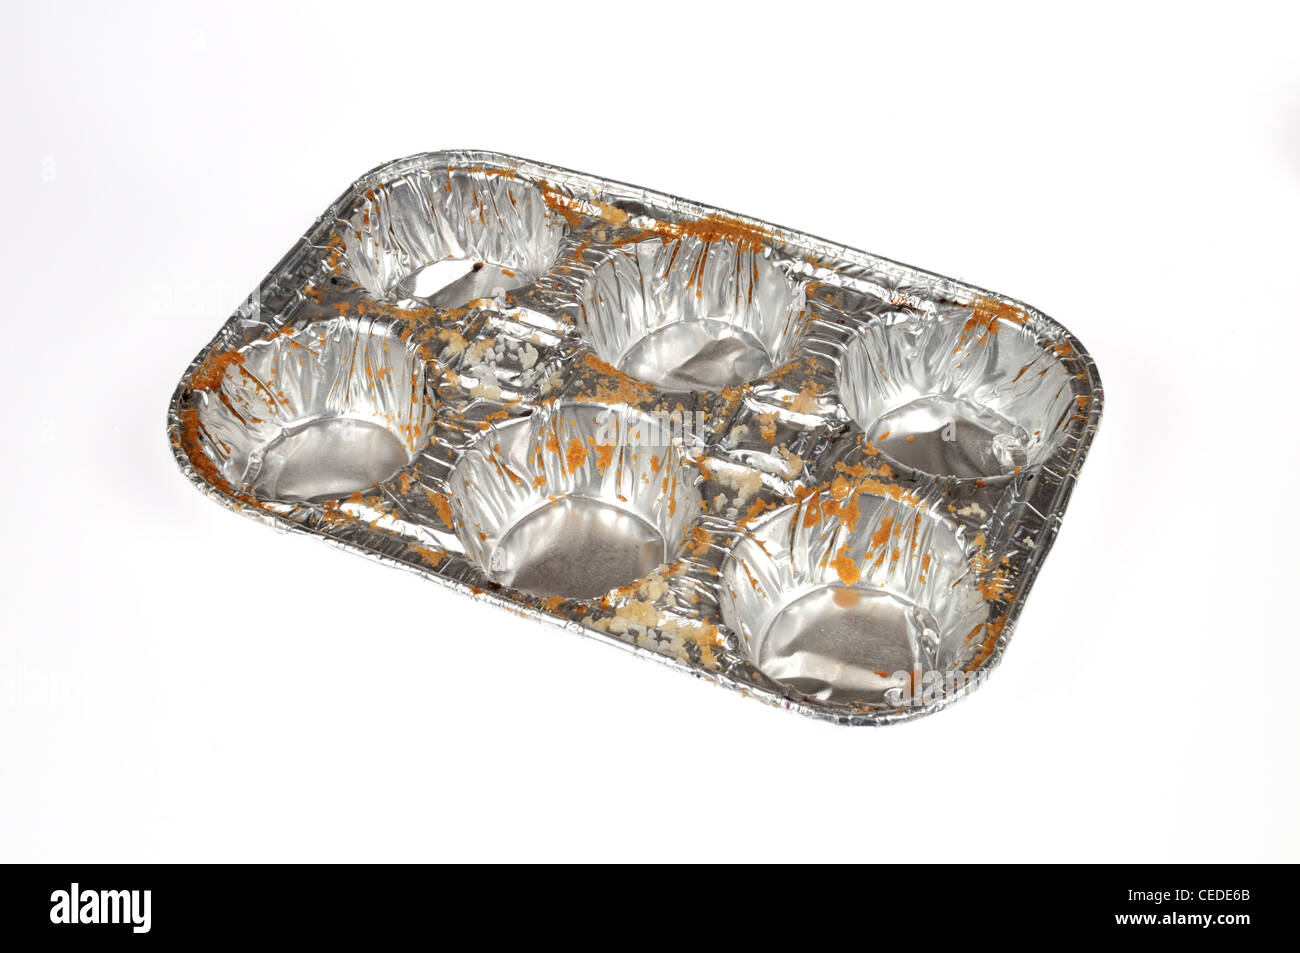 Empty muffin aluminum foil 6 pack tin on white background cutout - Stock Image